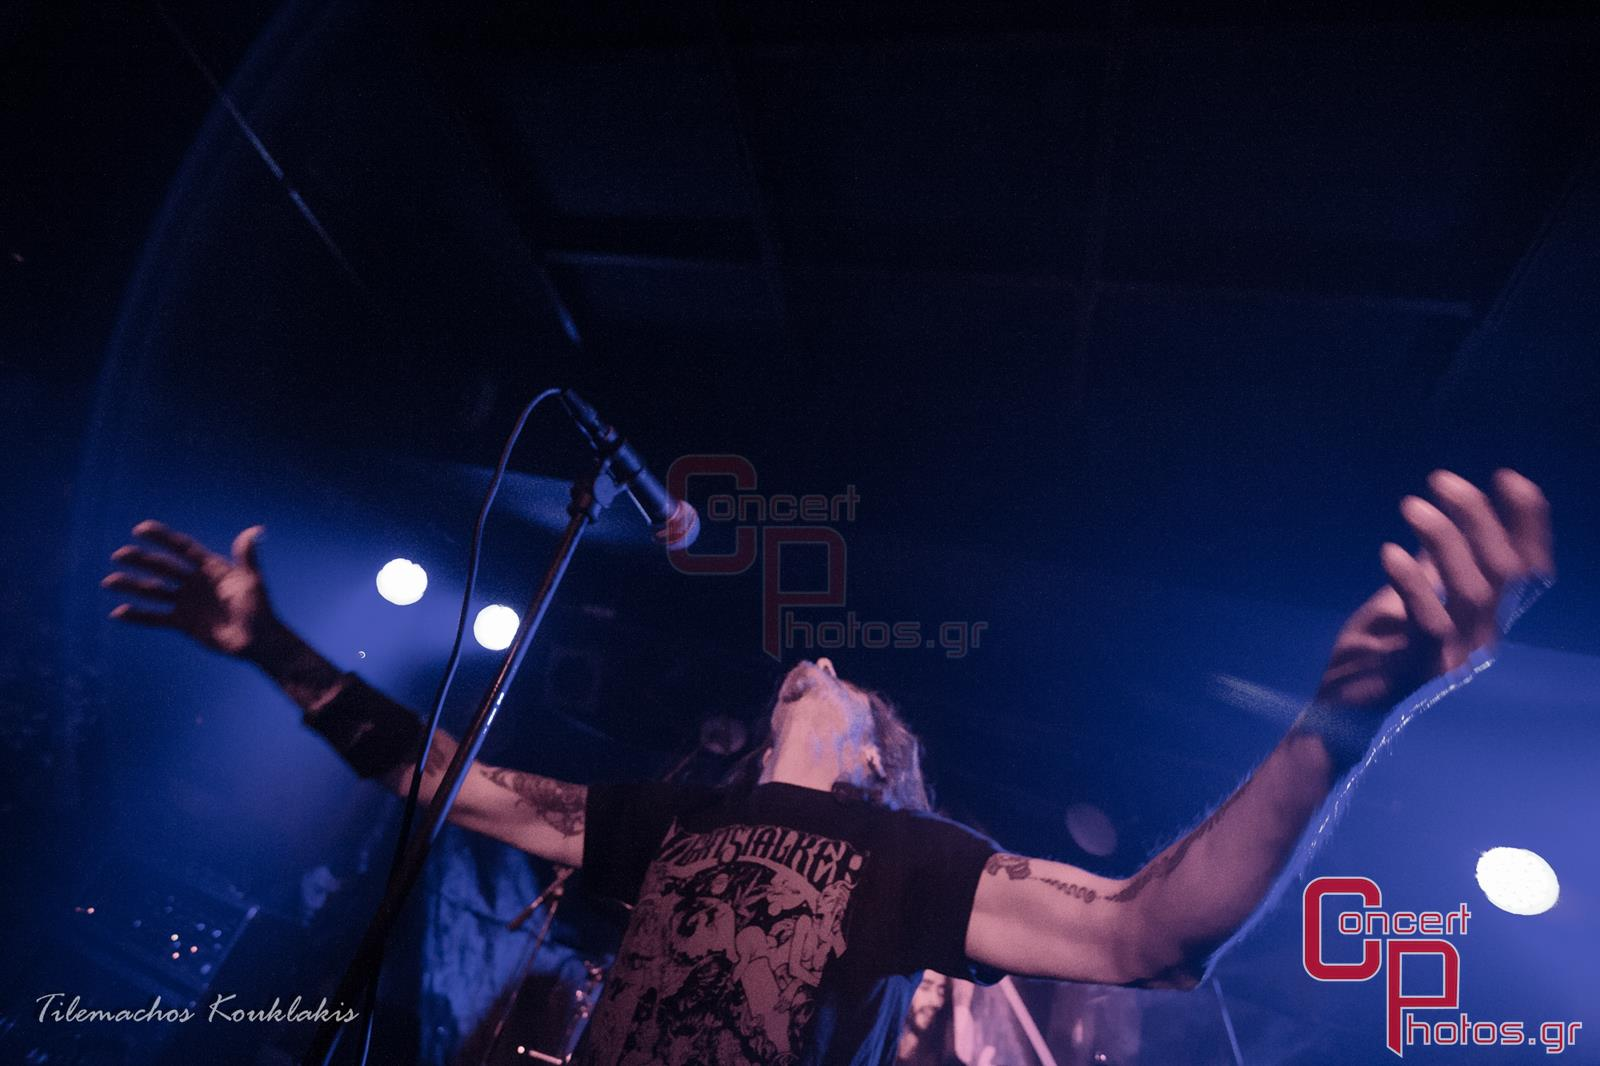 Nightstalker-Nightstalker AN Club photographer:  - concertphotos_-35